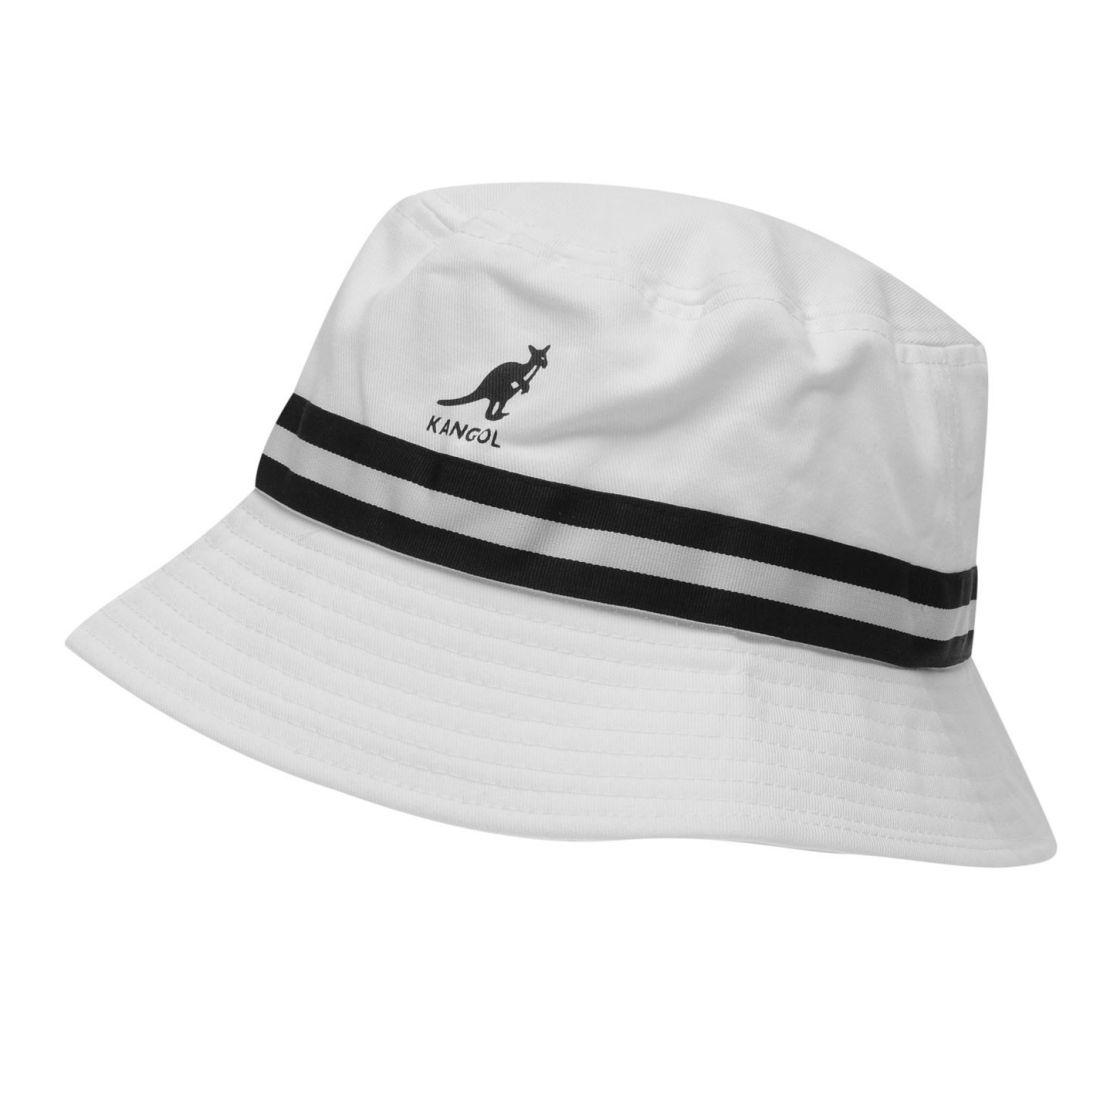 34498b5ec397a Details about Kangol Mens Stripe Bucket Hat Cotton